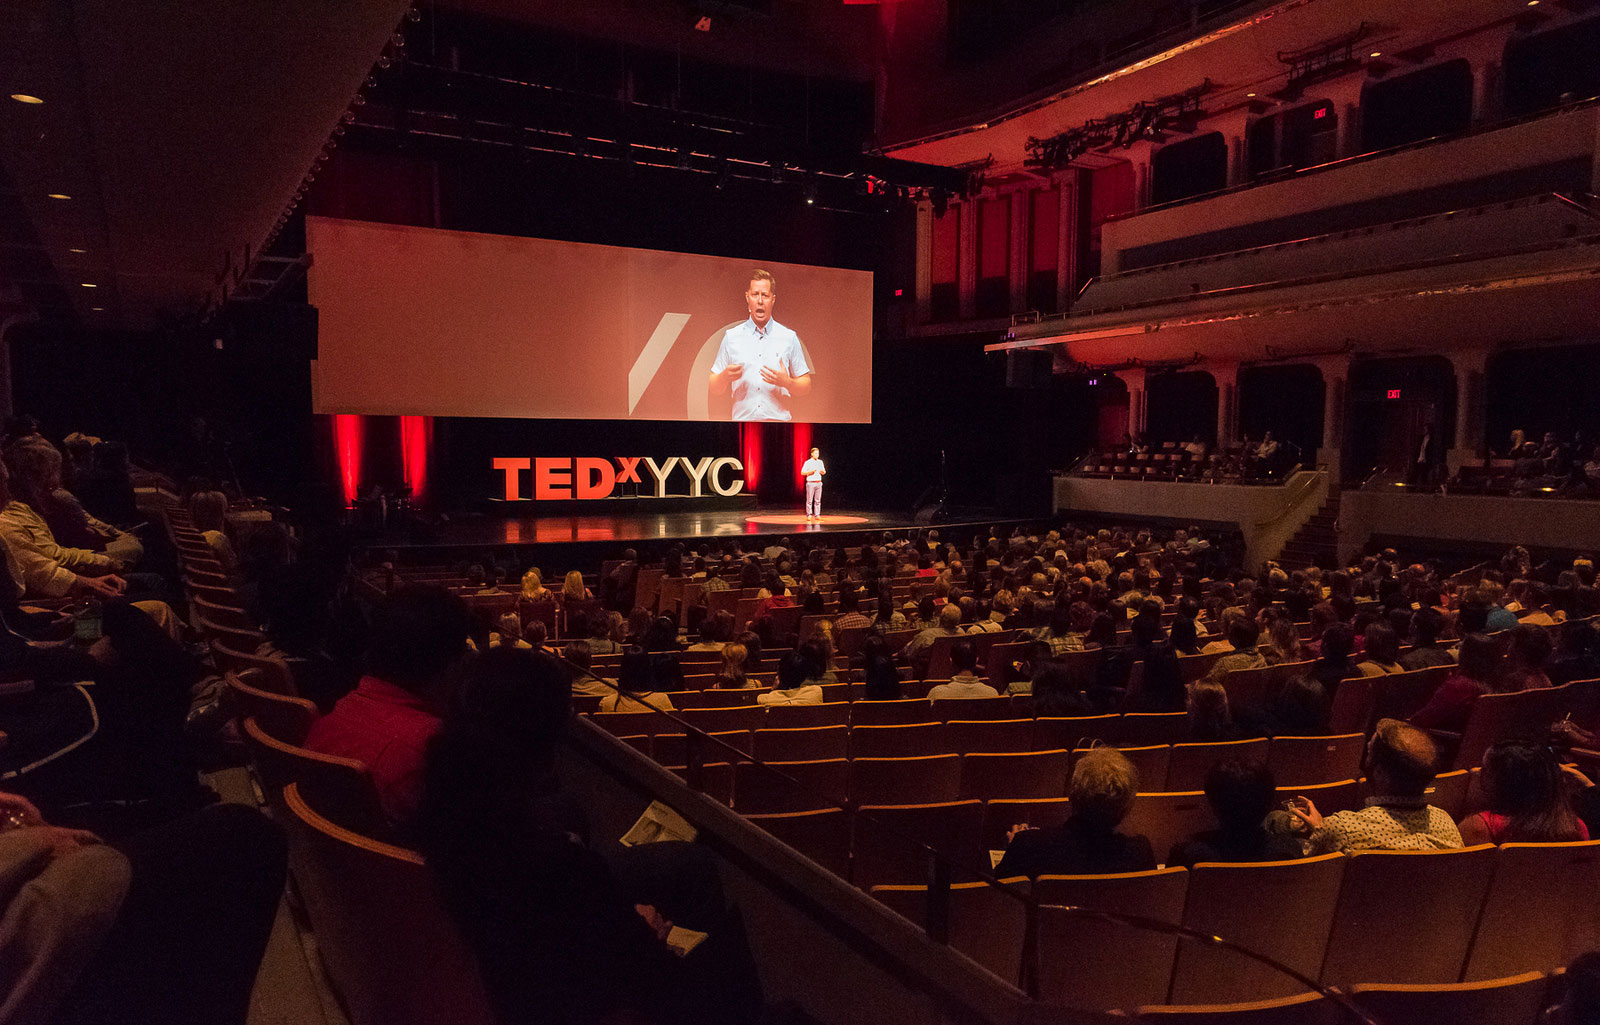 What to Expect When You're Expecting…. To Attend TEDxYYC